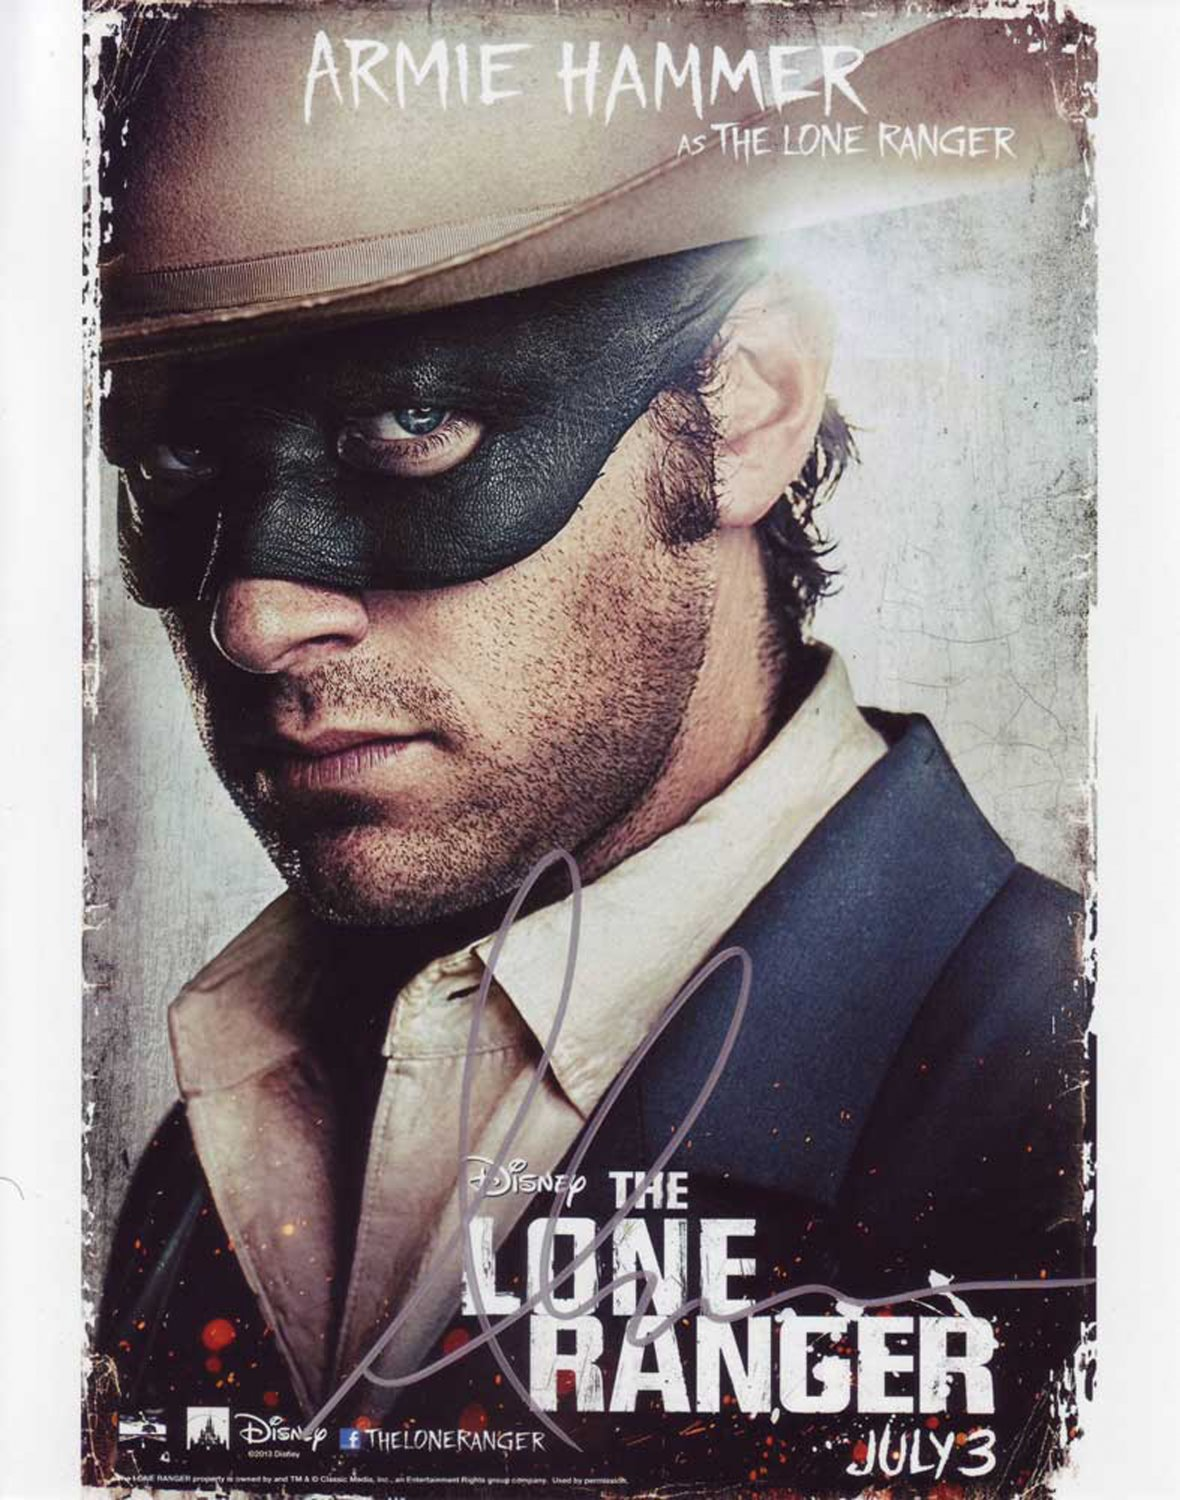 Armie Hammer The Lone Ranger 8 x 10 Autographed Photo (Reprint 810 Great Gift Idea!)